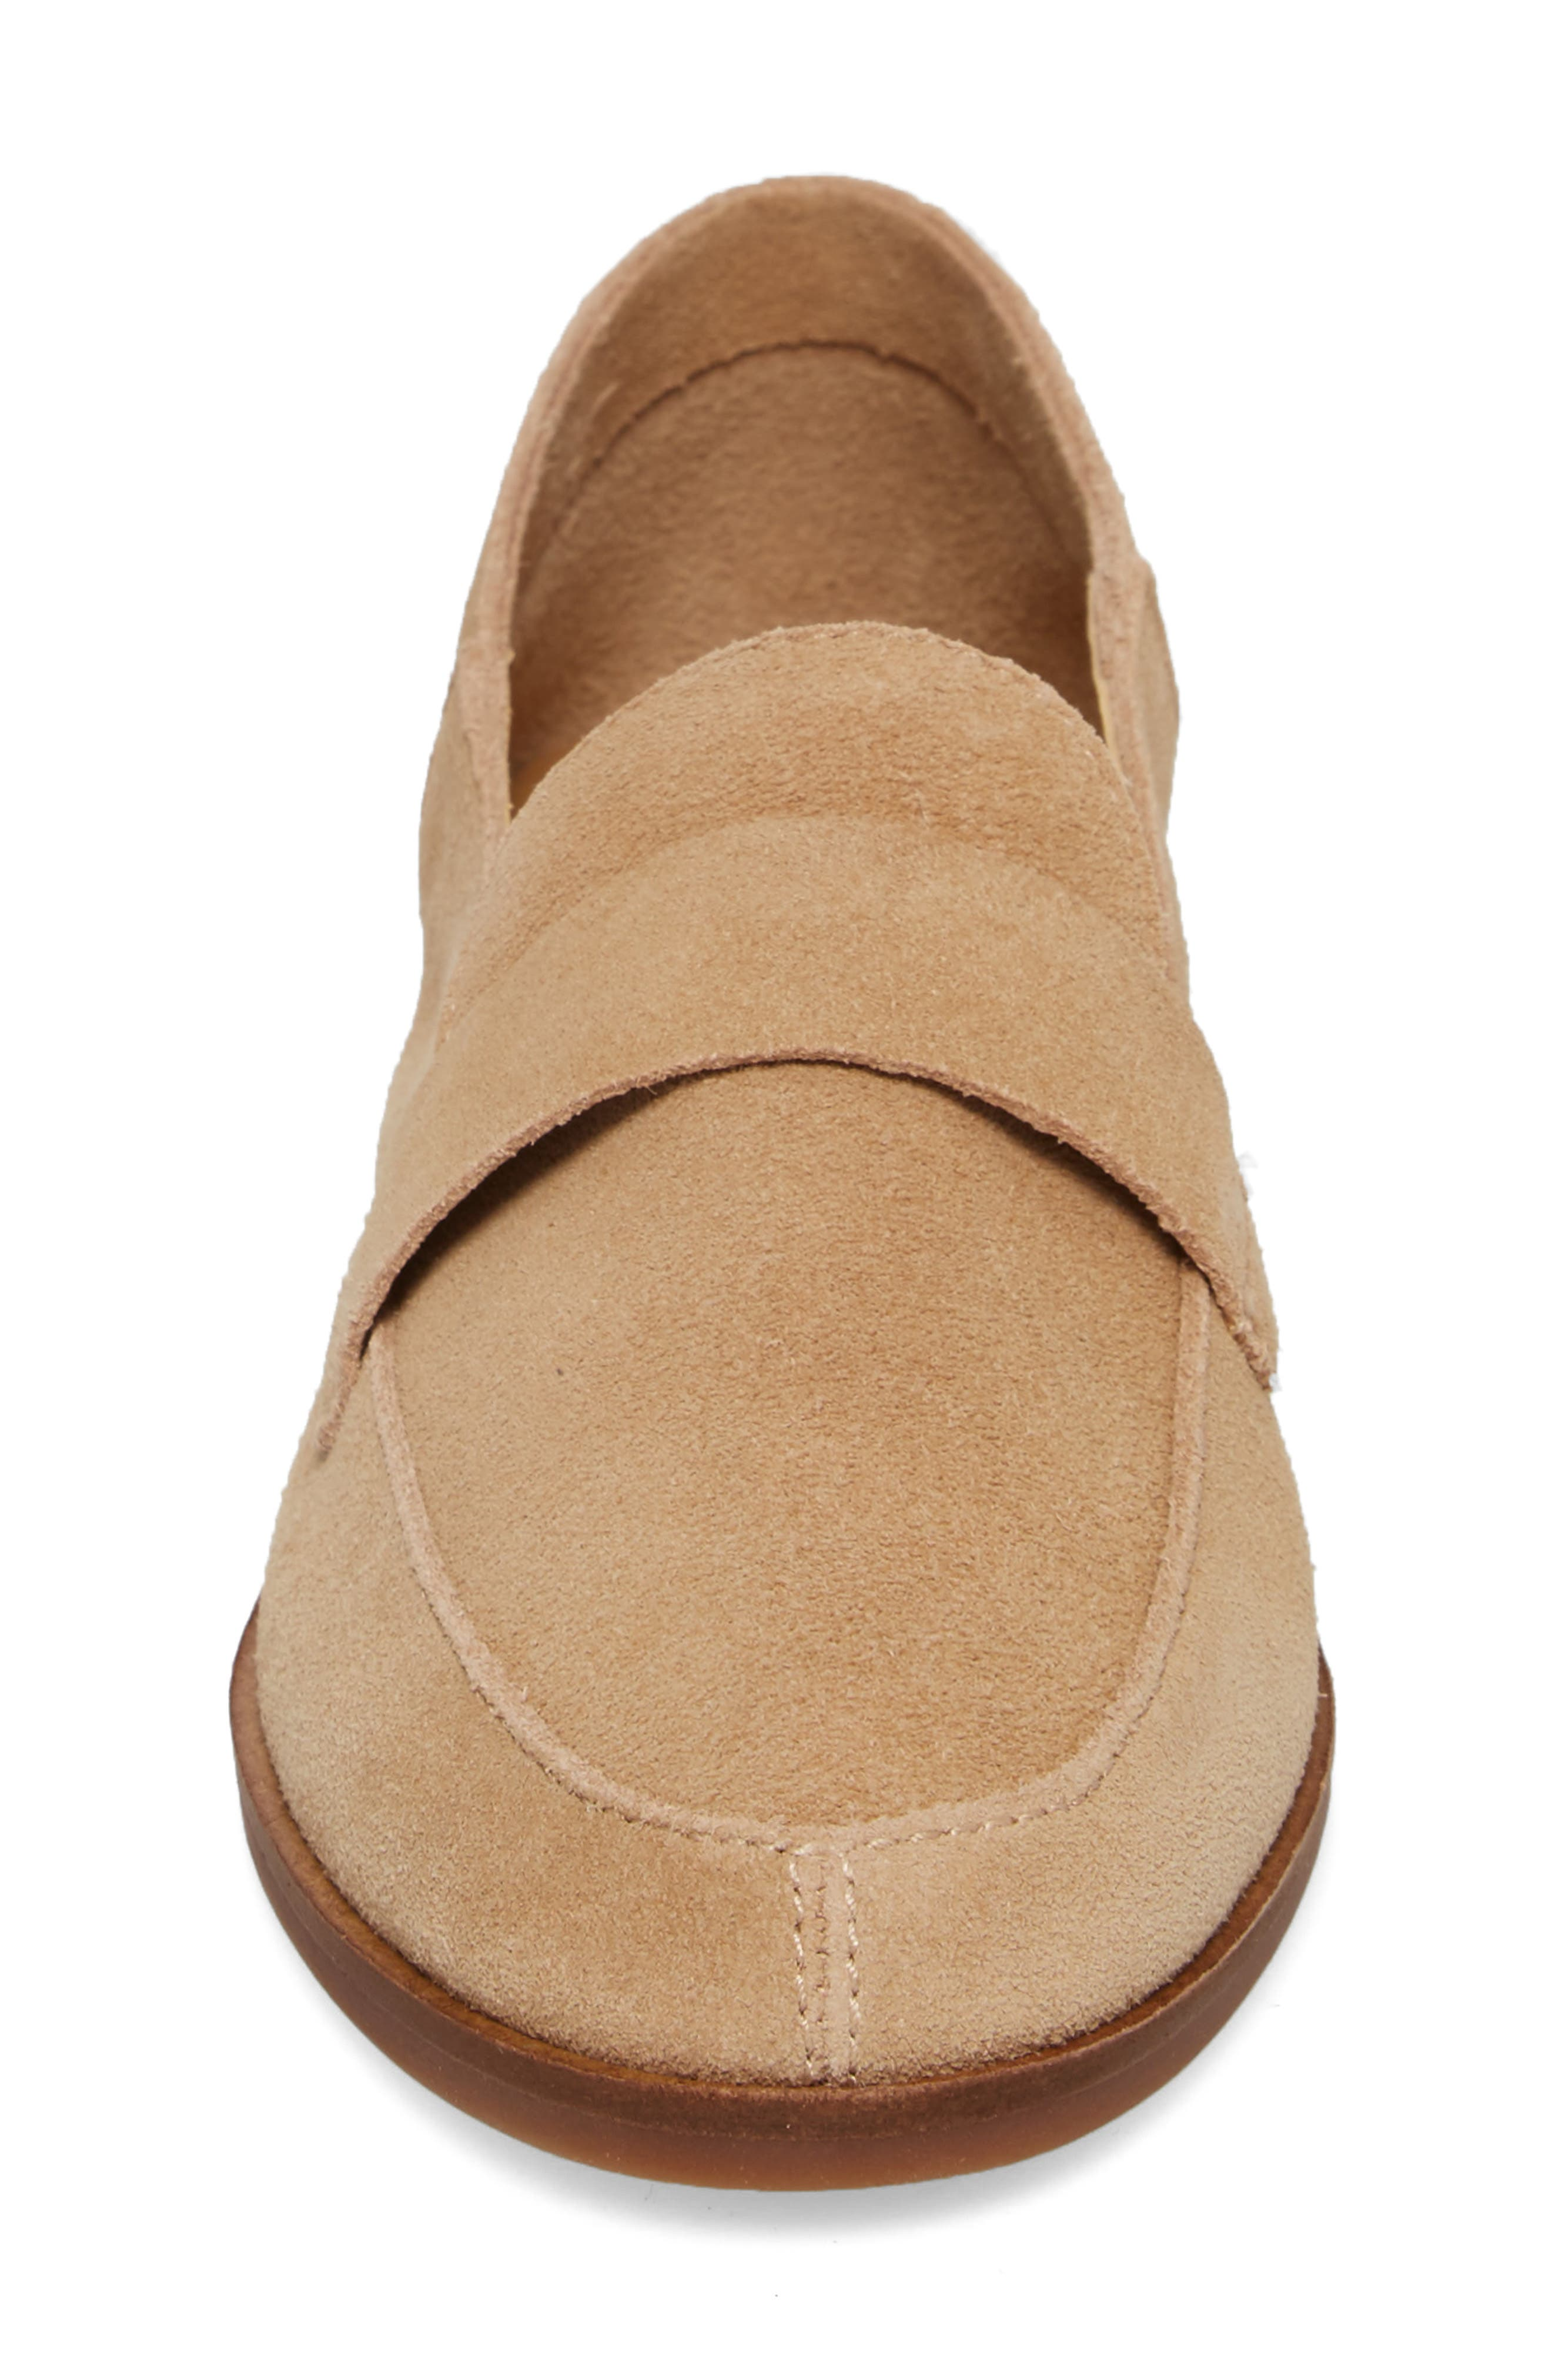 Chennie Loafer,                             Alternate thumbnail 4, color,                             Travertine Suede